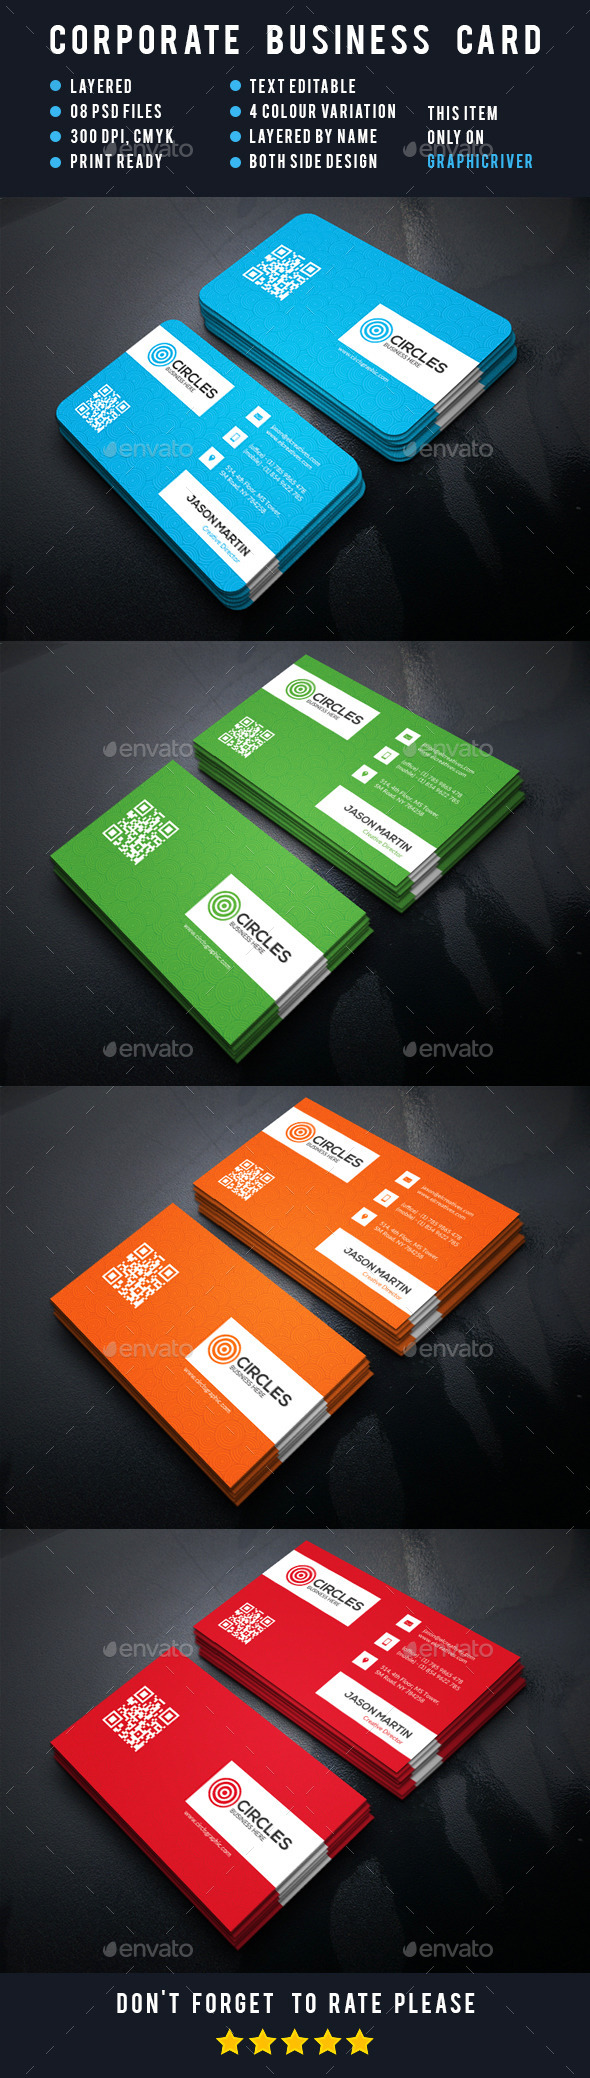 Cricles Corporate Business Card - Business Cards Print Templates